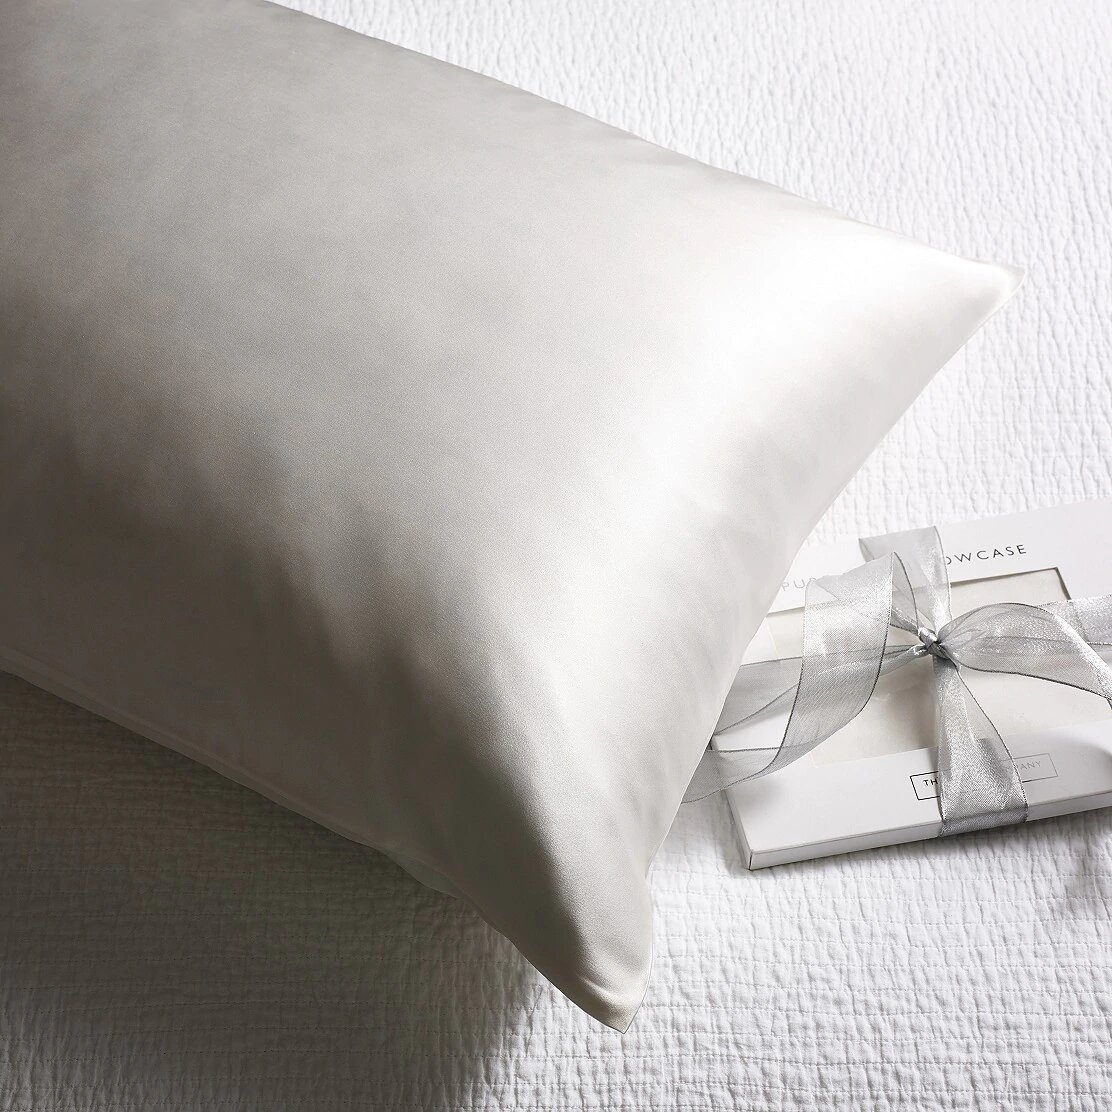 The White Company launches its first silk pillowcase and it promises